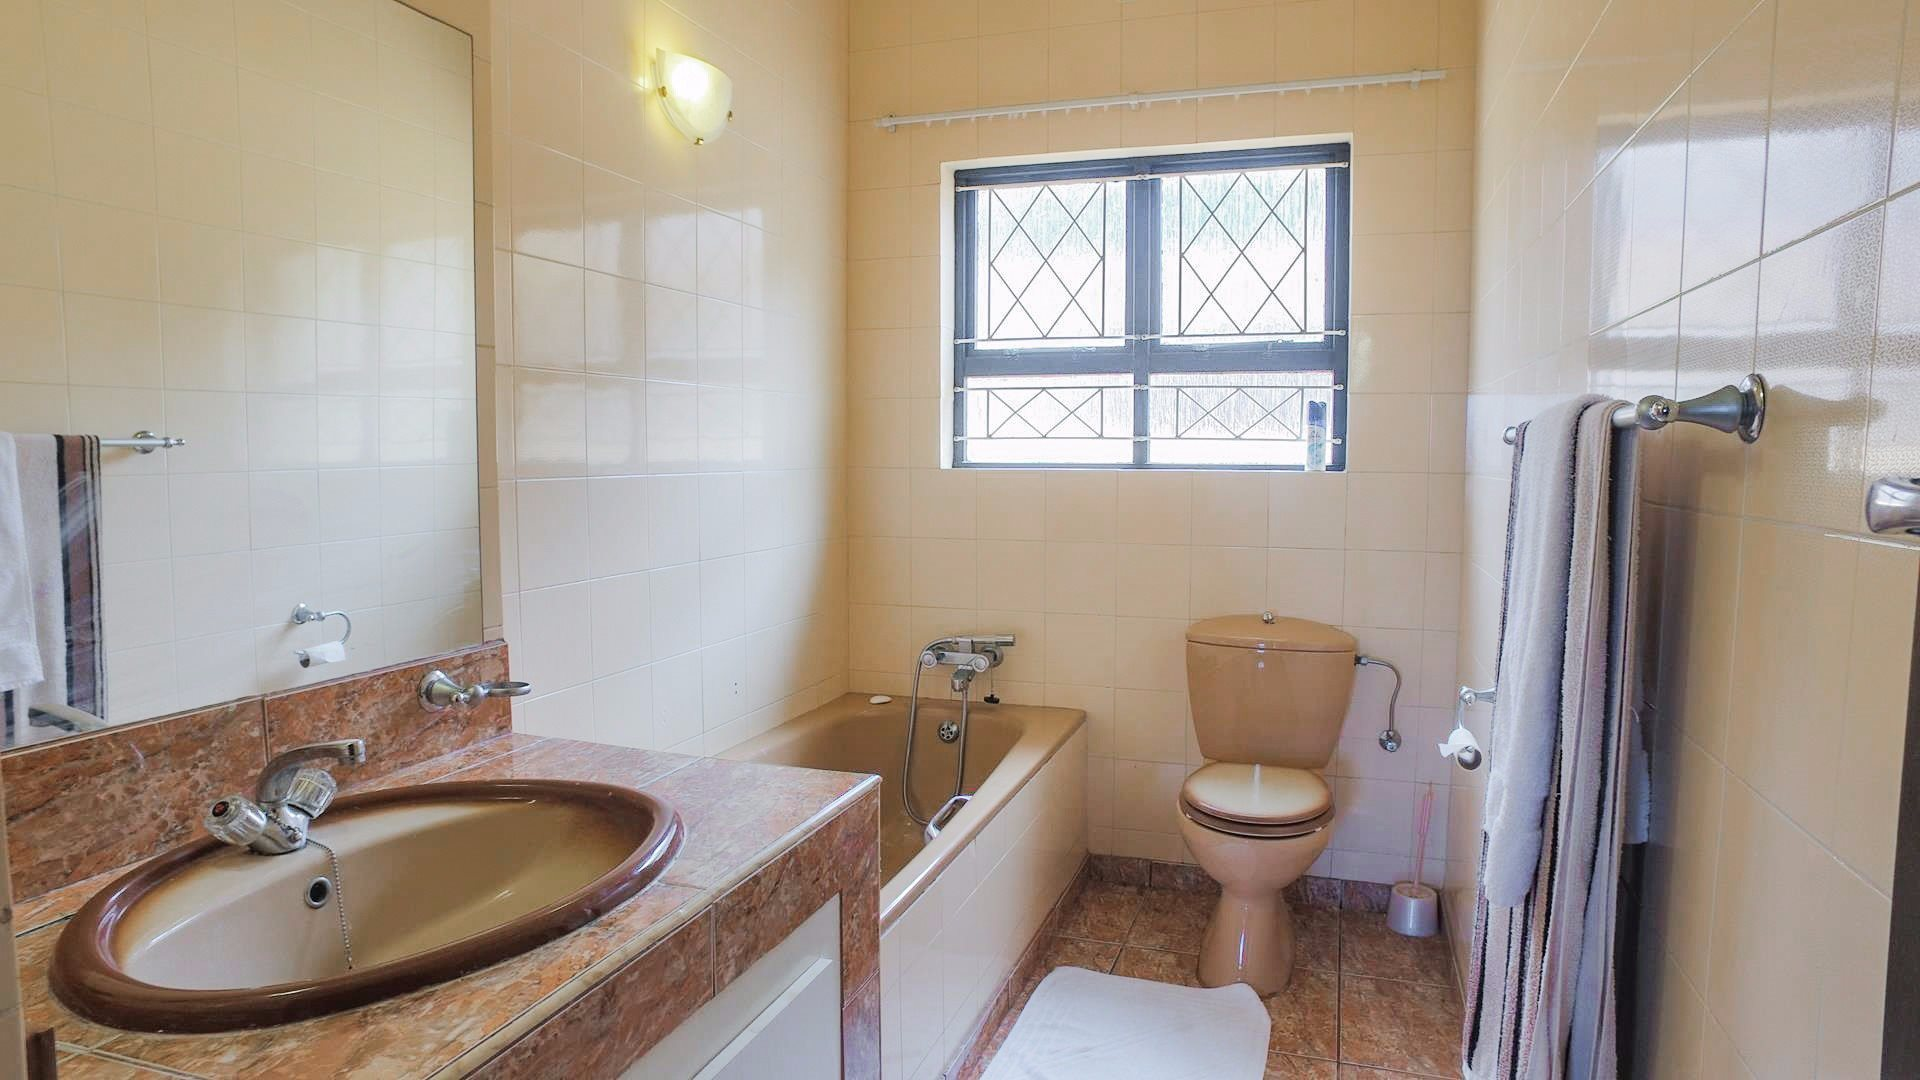 Scottburgh Central property for sale. Ref No: 13520906. Picture no 41